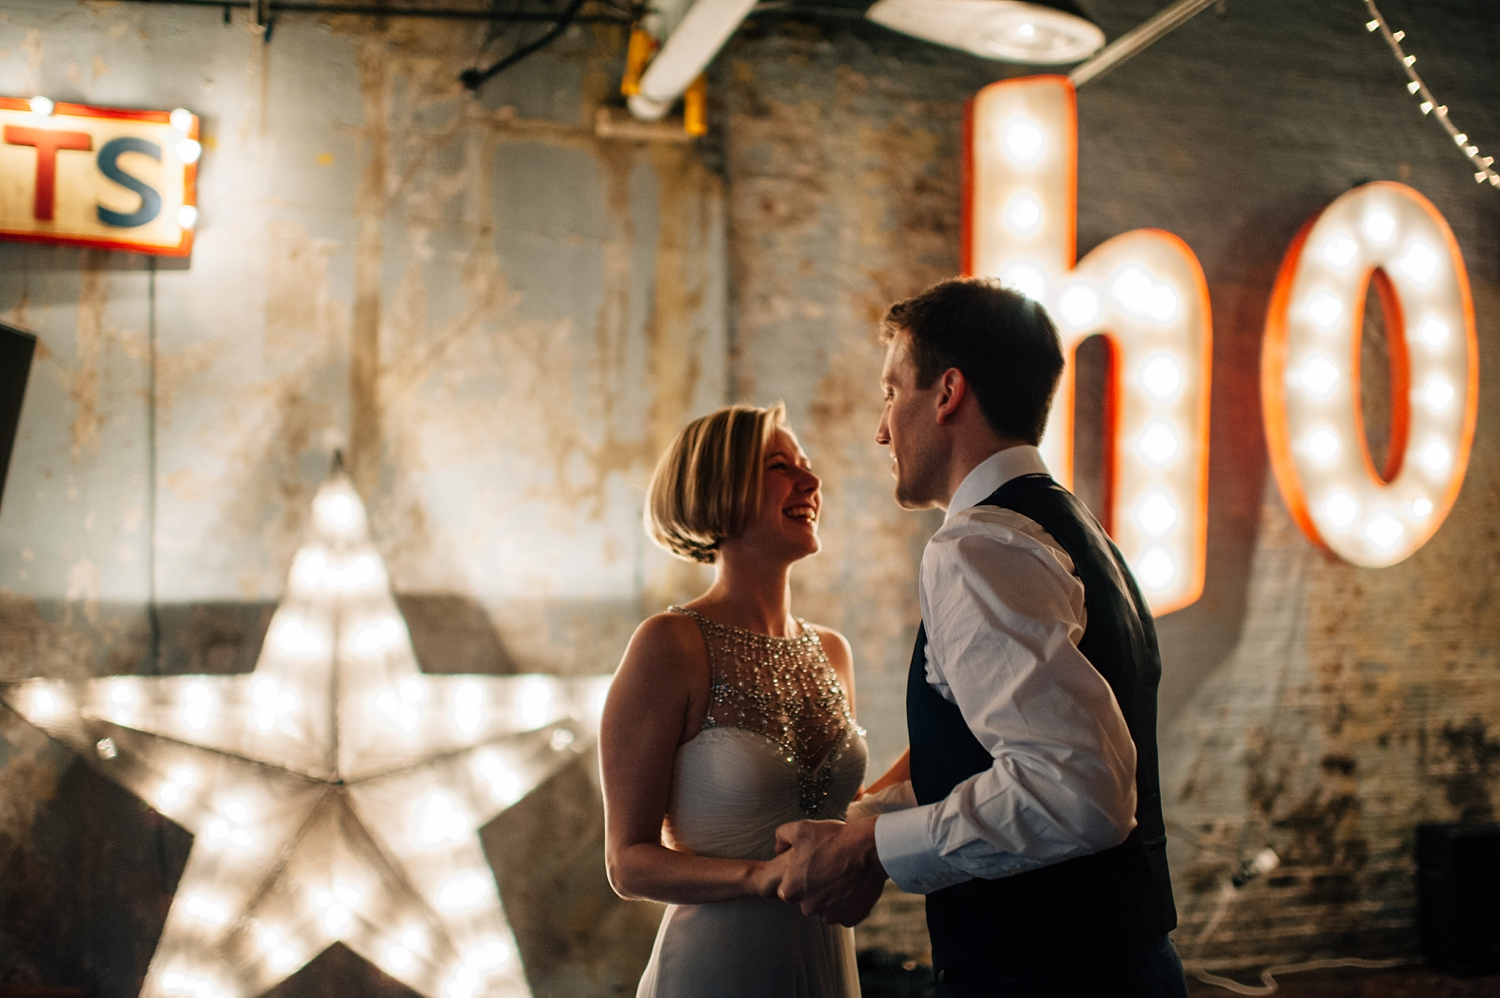 0213-lisa-devine-alternative-wedding-photography-london-hackney-dalston-london-photography-townhall-hotel.JPG